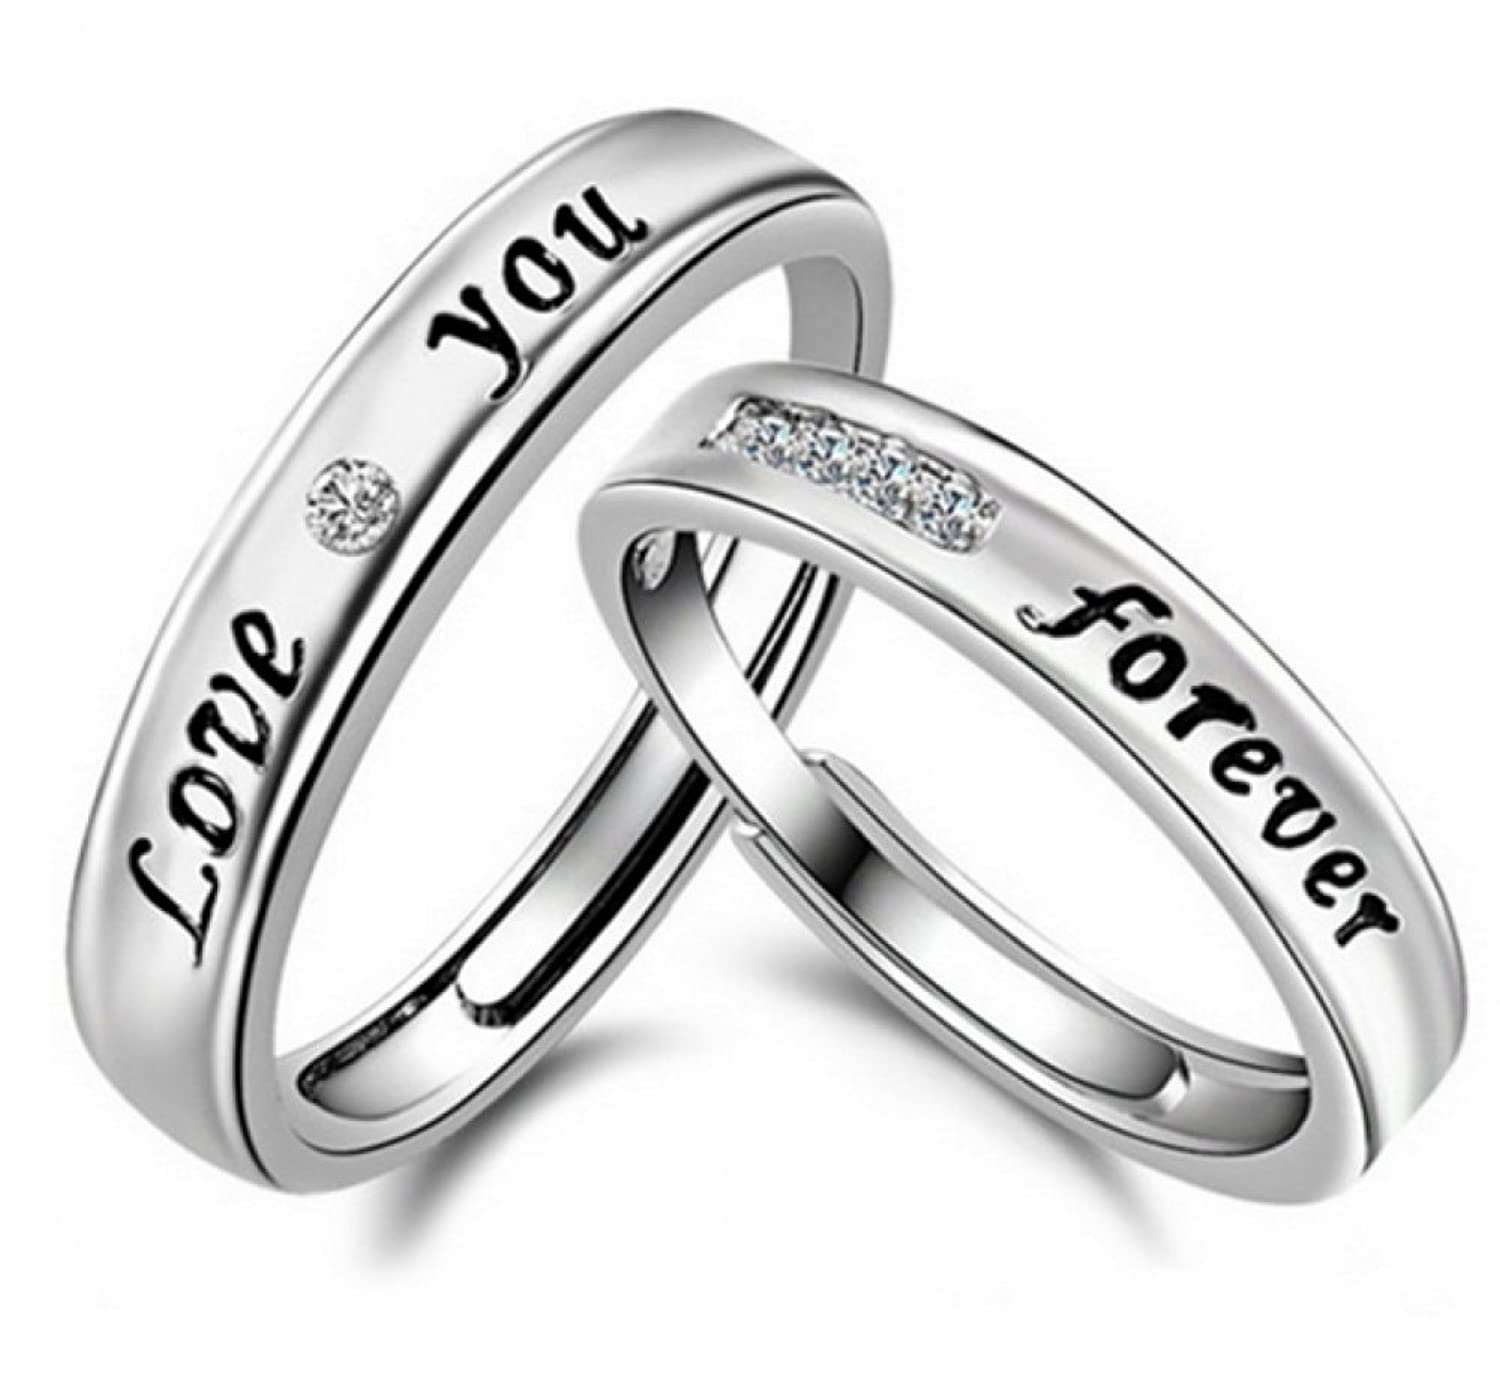 couples wedding love silver rings plated evermarker products someone collections special cubic infinity zirconia for